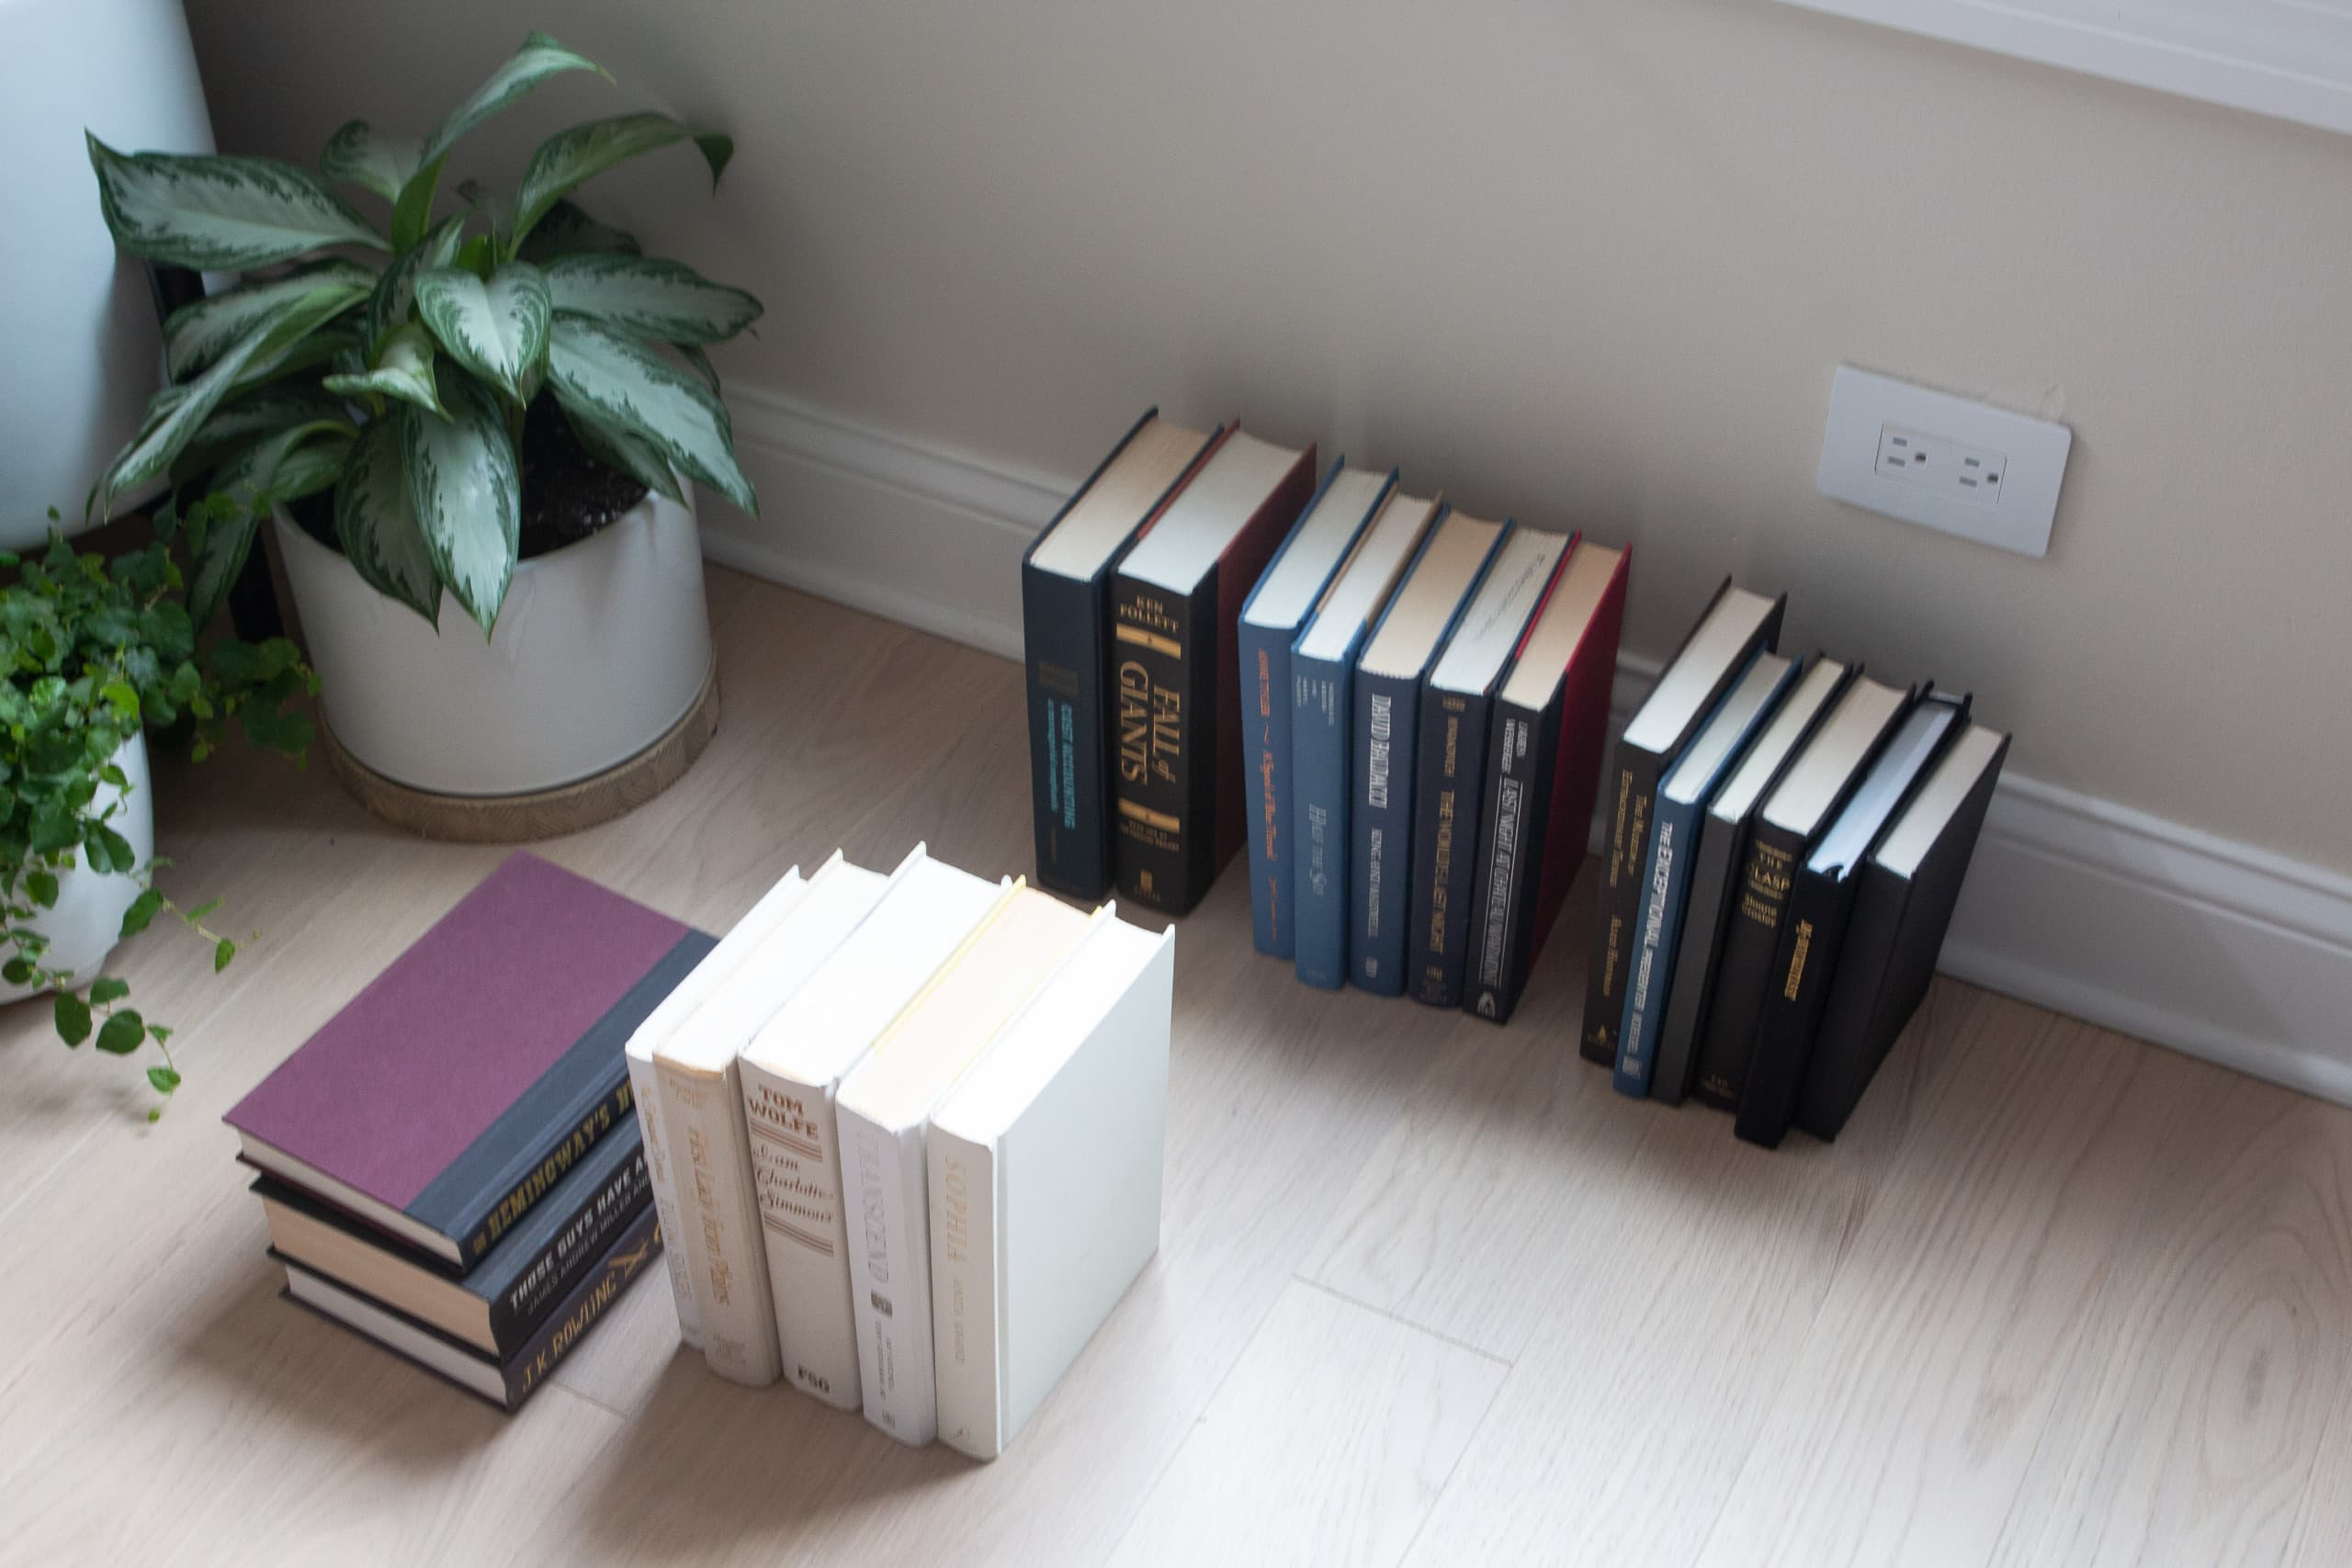 Gather all of your hardcover books together